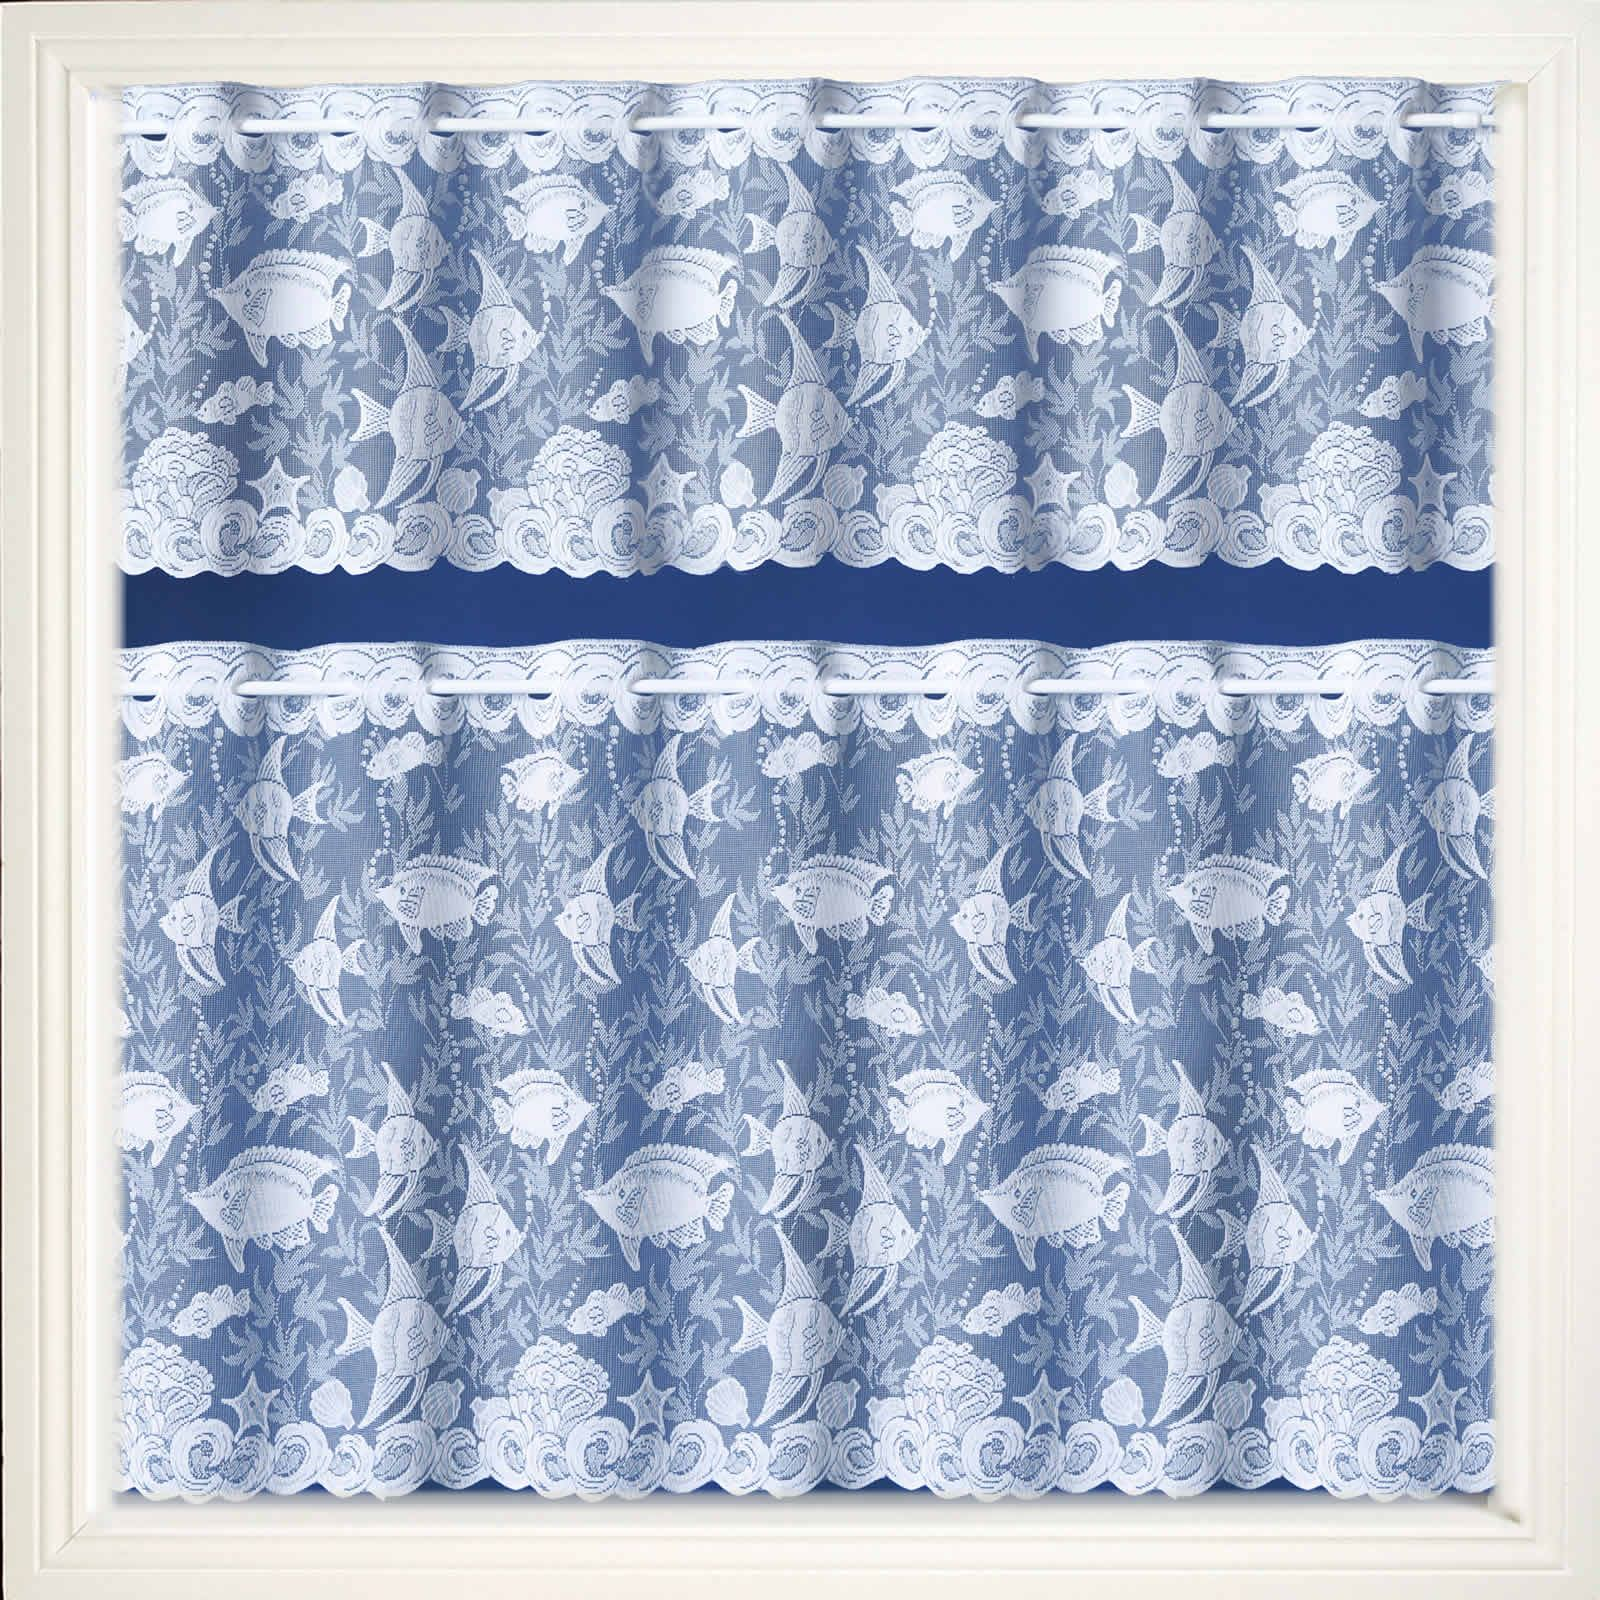 curtain cafe curtain small curtain lace by french country ha